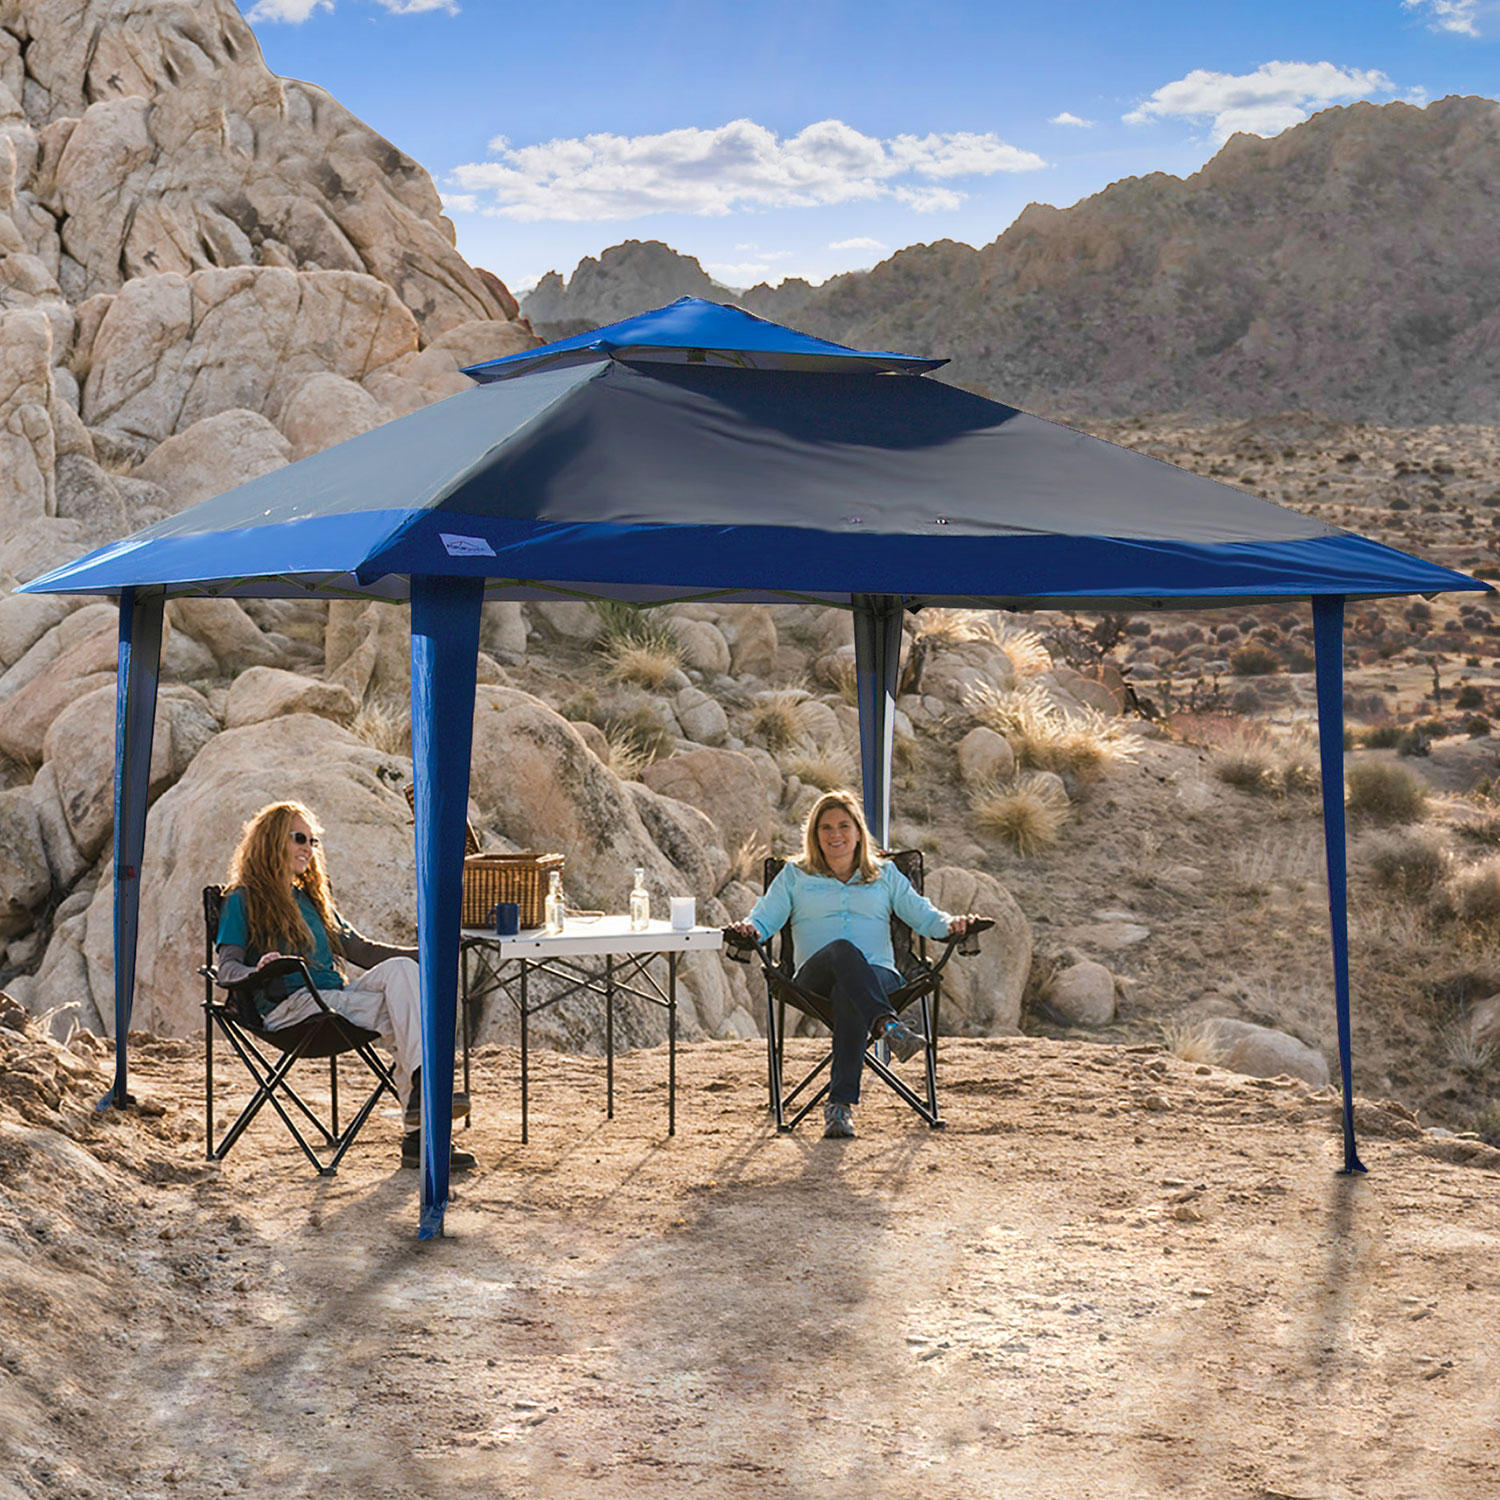 13'x13' POPUPSHADE Instant Canopy with POPLOCK X-Wing Frame, Wheel-Bag